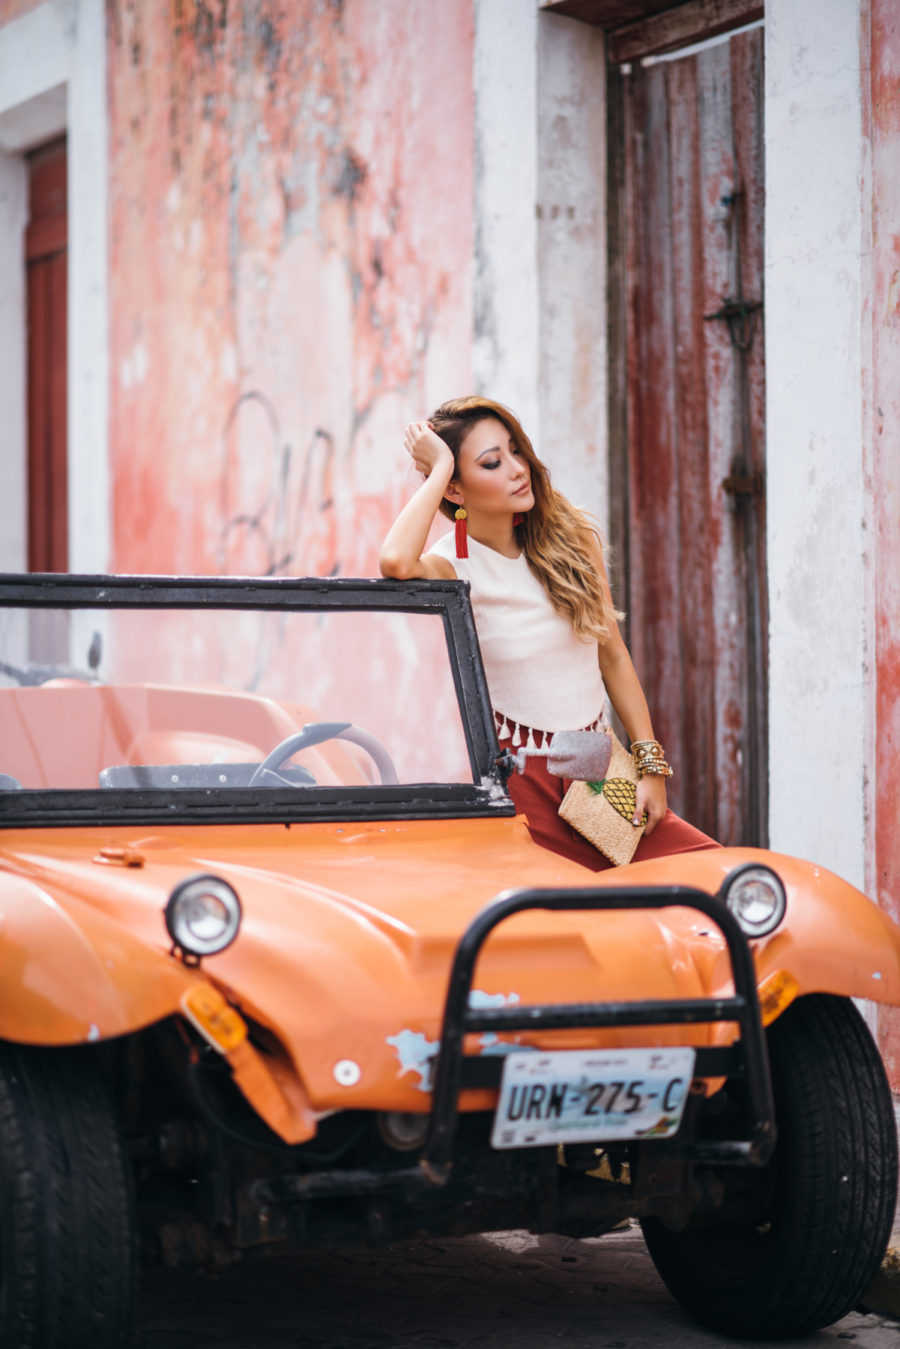 Isla Mujeres, hat attack, Cancun, Mexico, NOTJESSFASHION, NYC, Top Fashion Blogger, Lifestyle Blogger, Travel Blogger